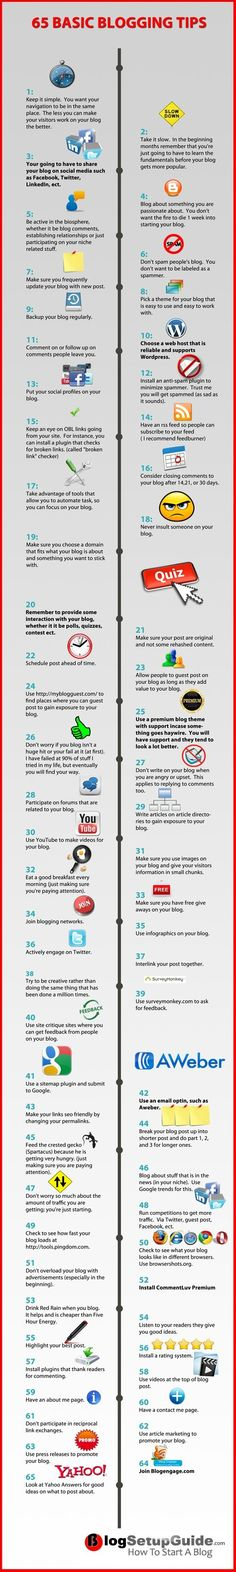 What Are 65 Basic Blogging Tips? #infographic